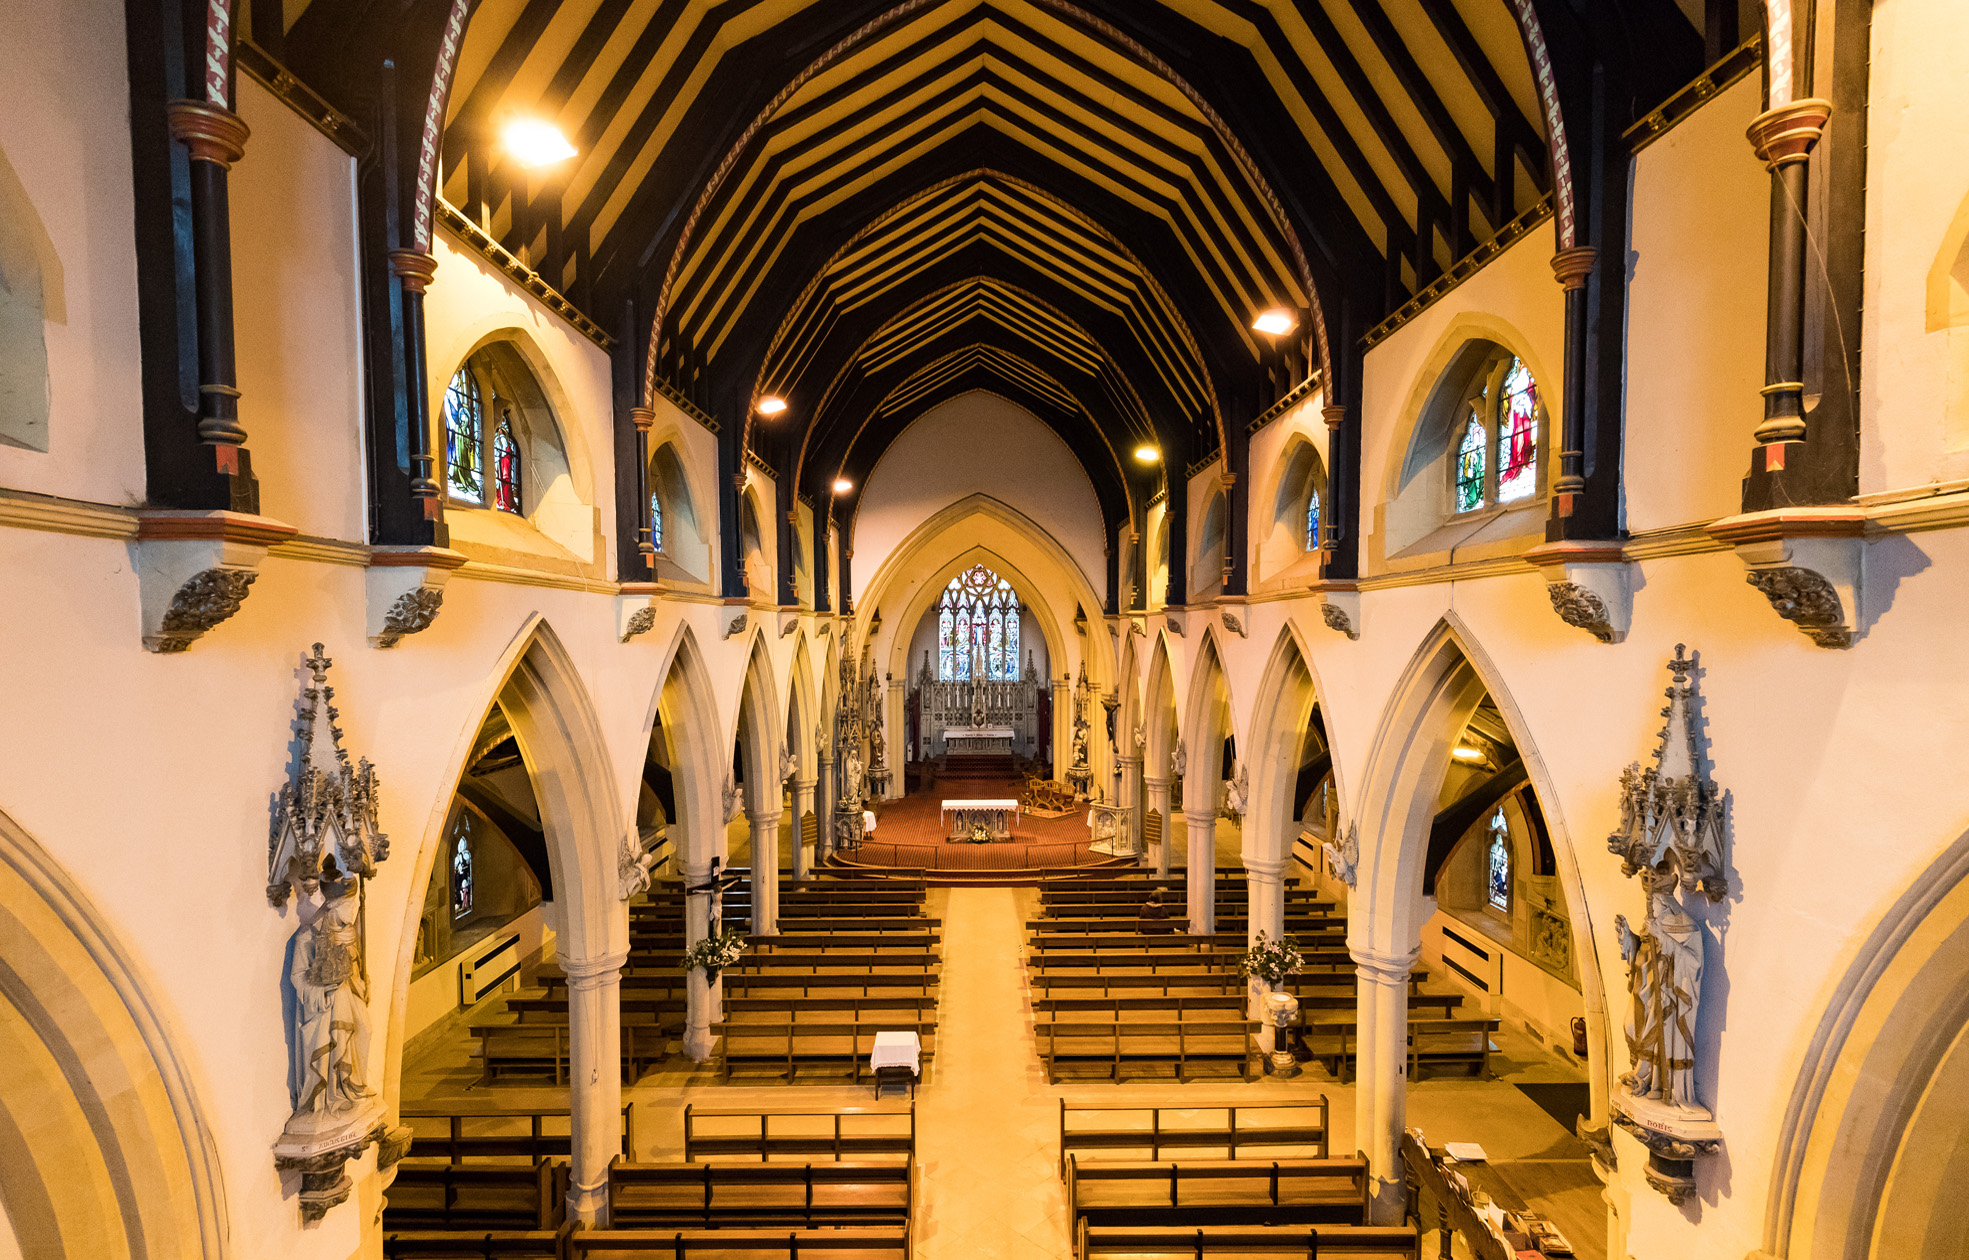 St Gregory's Interior